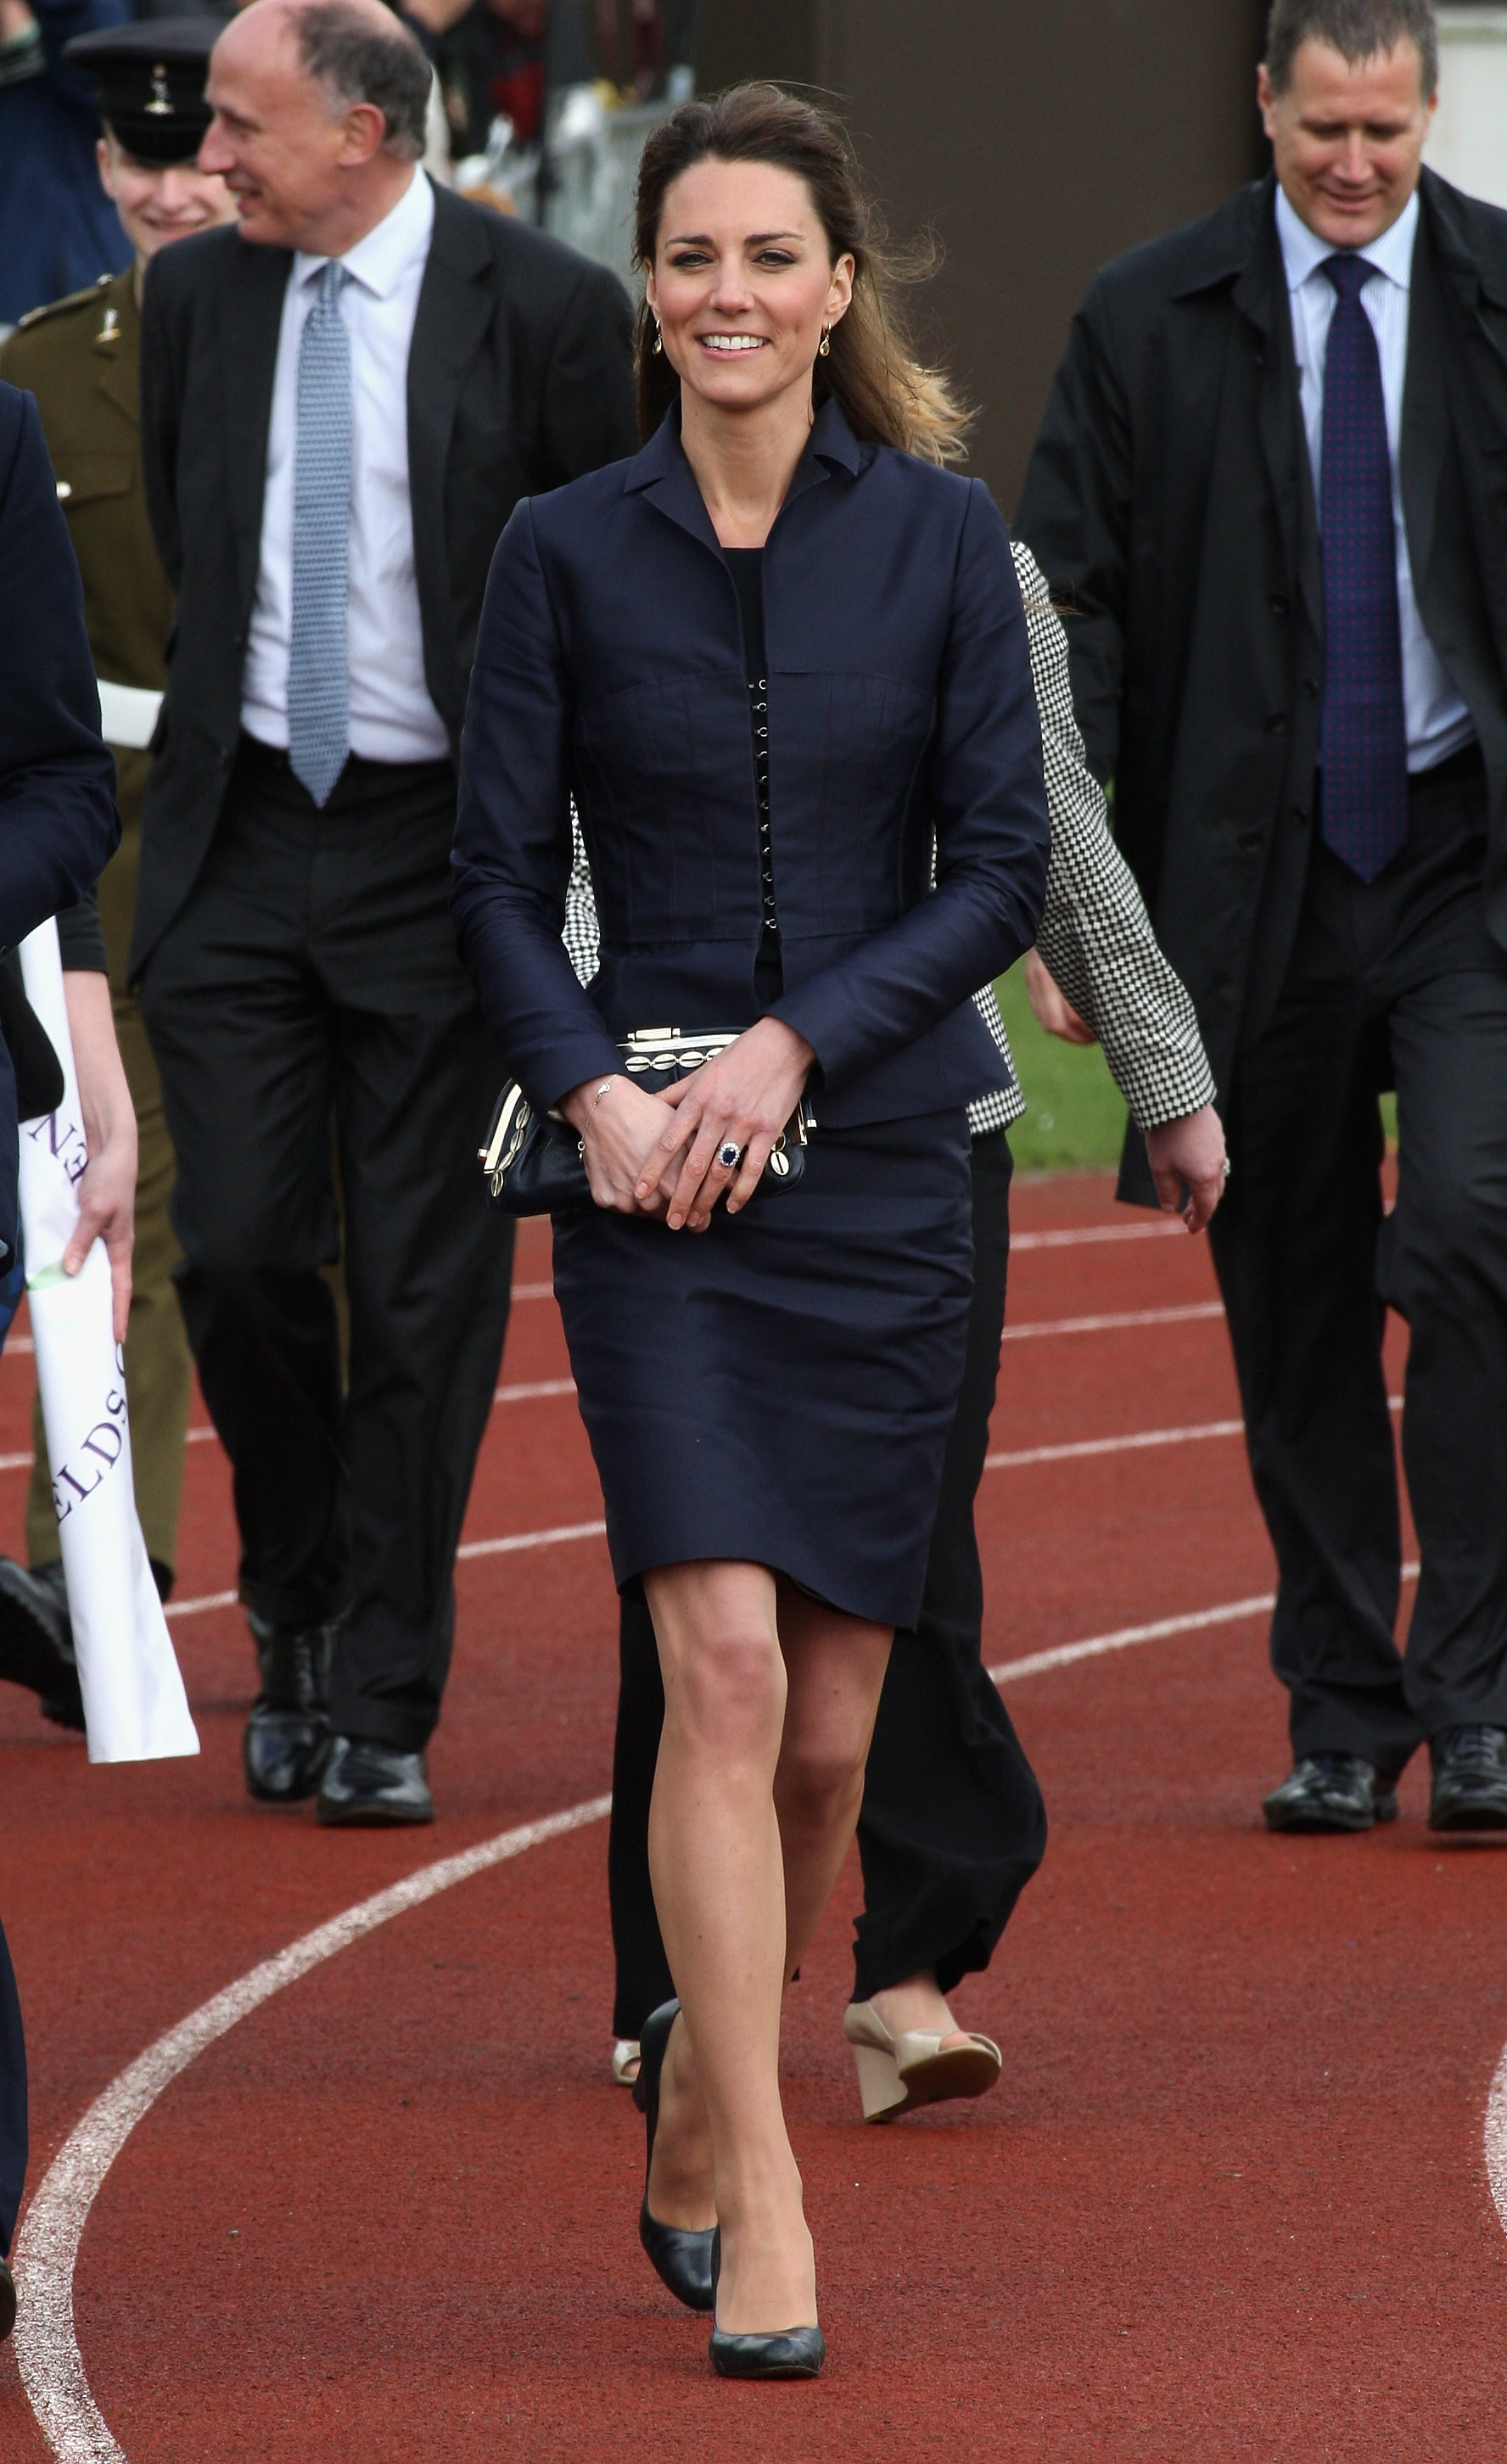 <strong>All Suited Up</strong>                                   Middleton, in a navy blue suit, met athletes on a visit to Witton Country Park in Darwen, England, in her final appearance before her wedding to Prince William. April 11, 2011